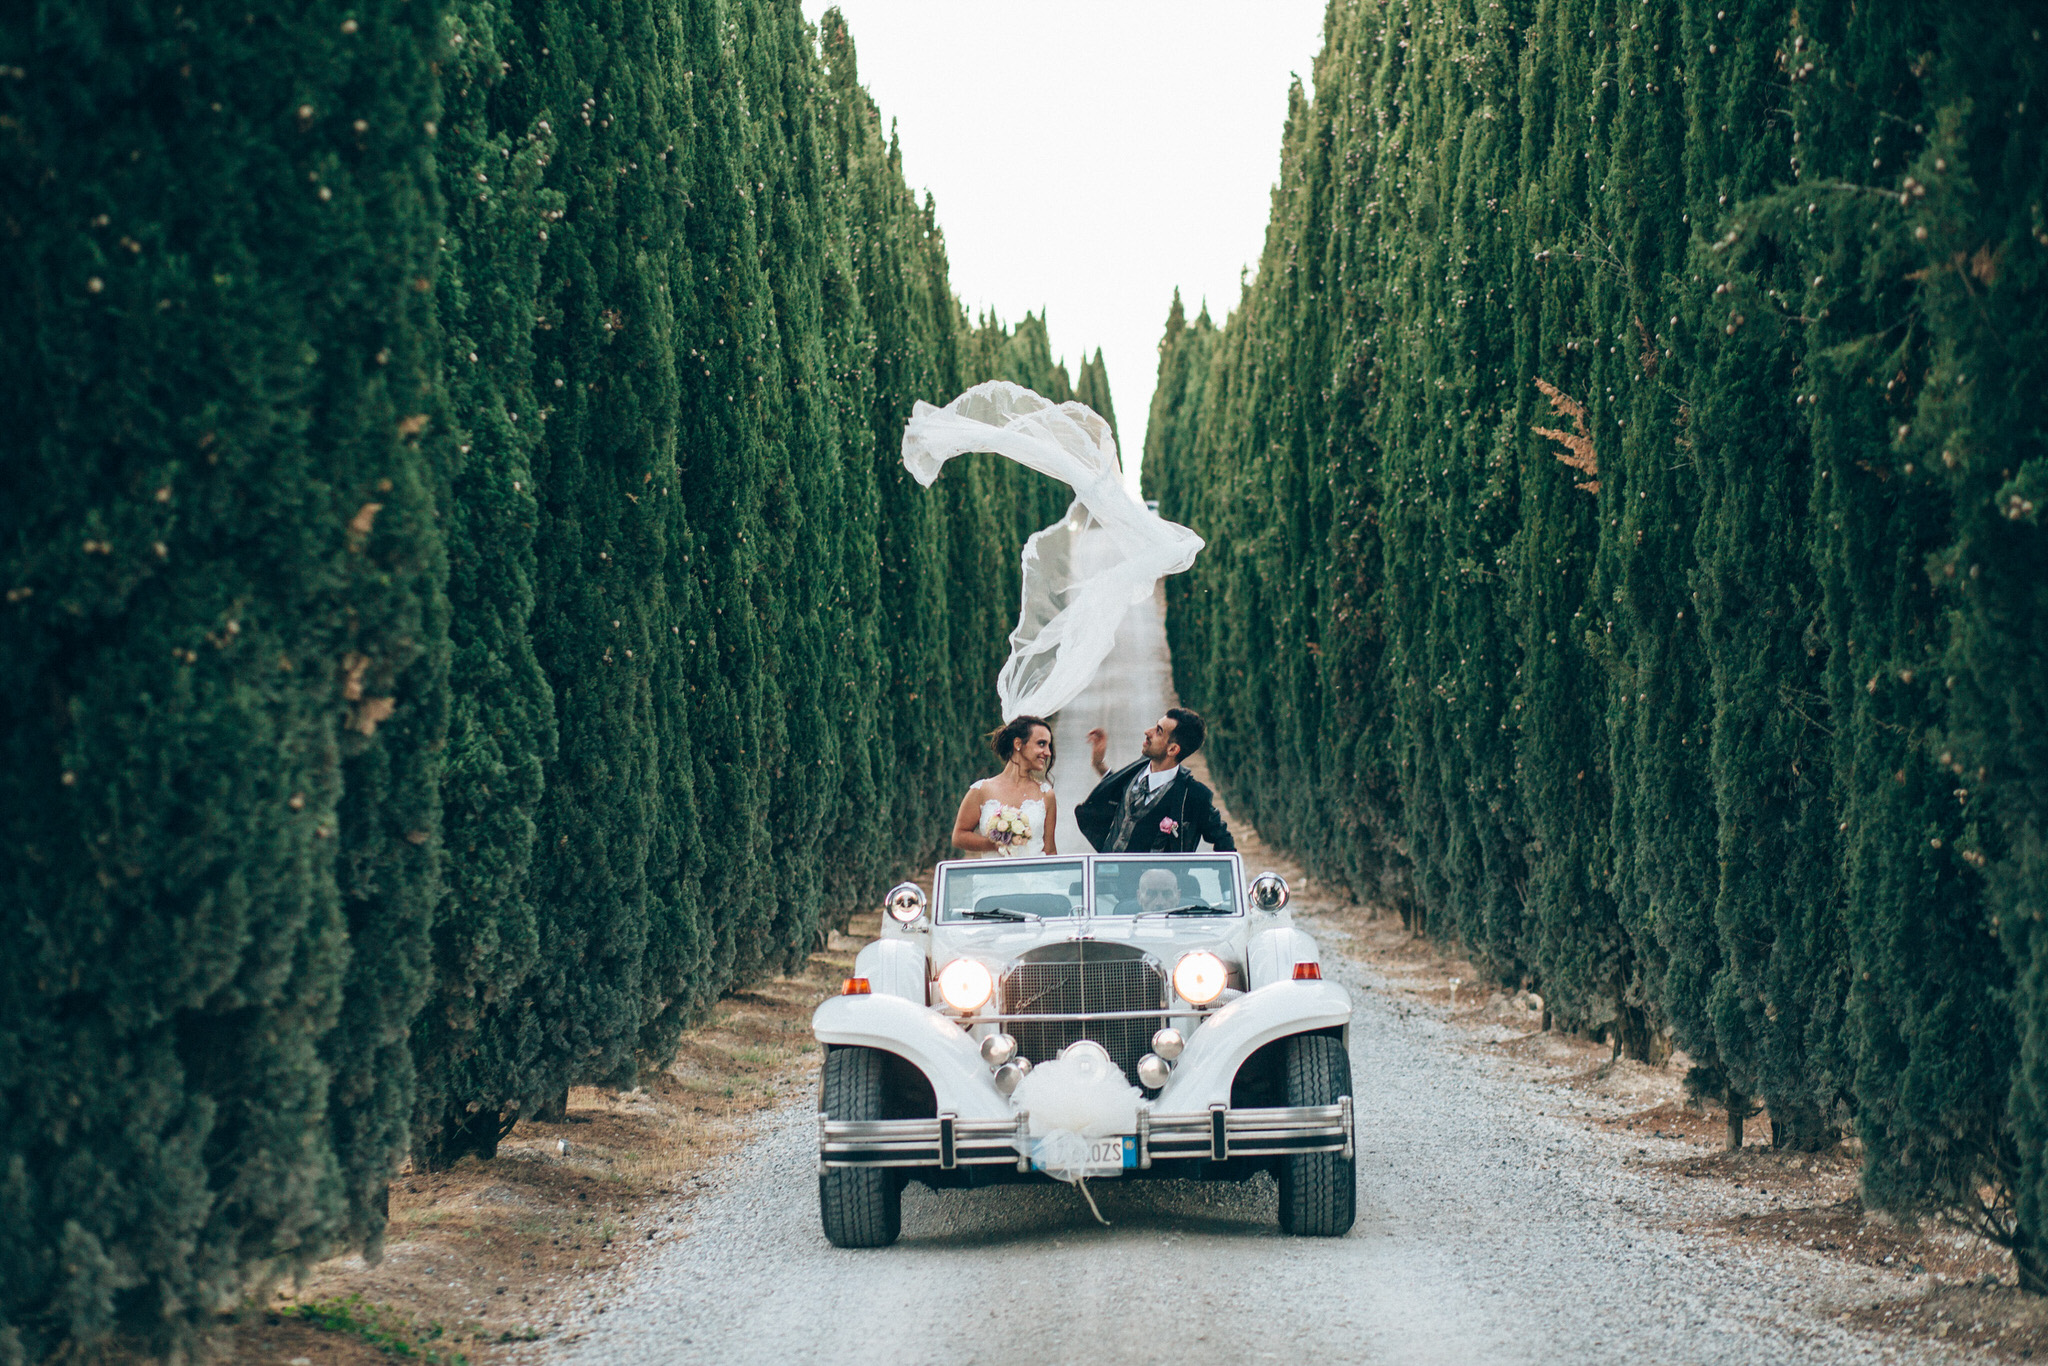 destination wedding from Germany to Tuscany